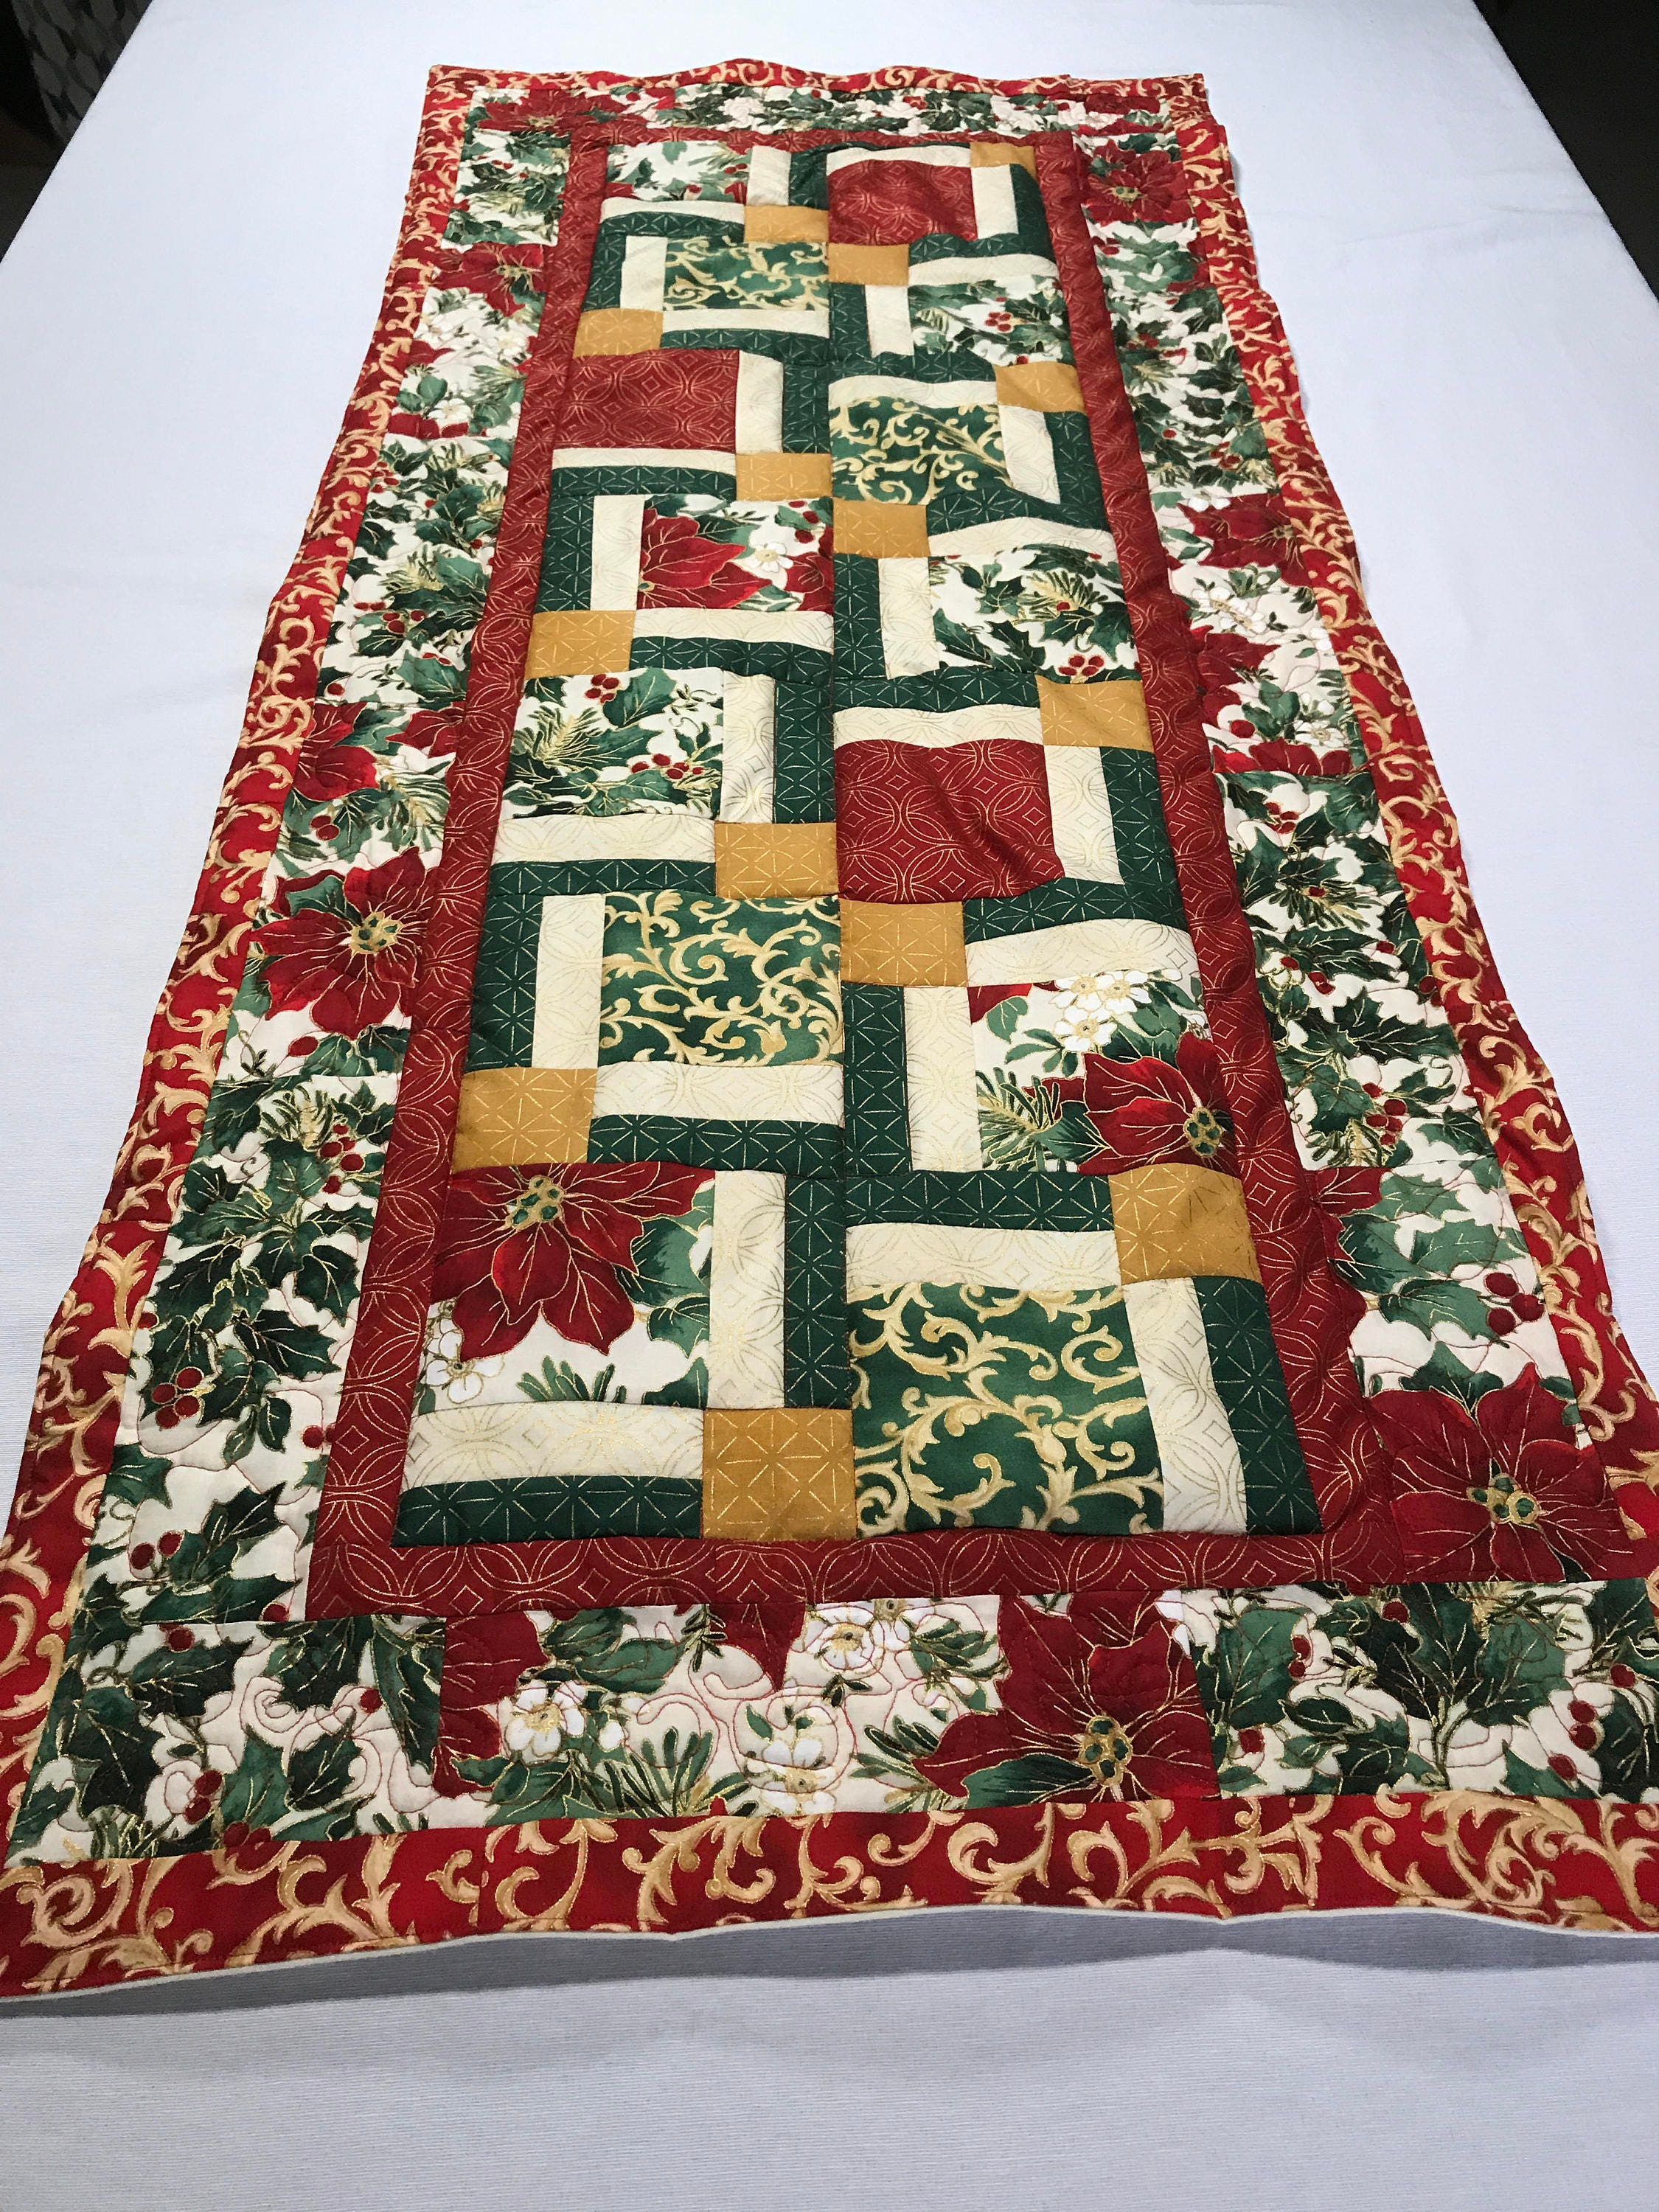 Christmas Table Runner Quilt.Christmas Runner Quilted Christmas Table Runner Christmas